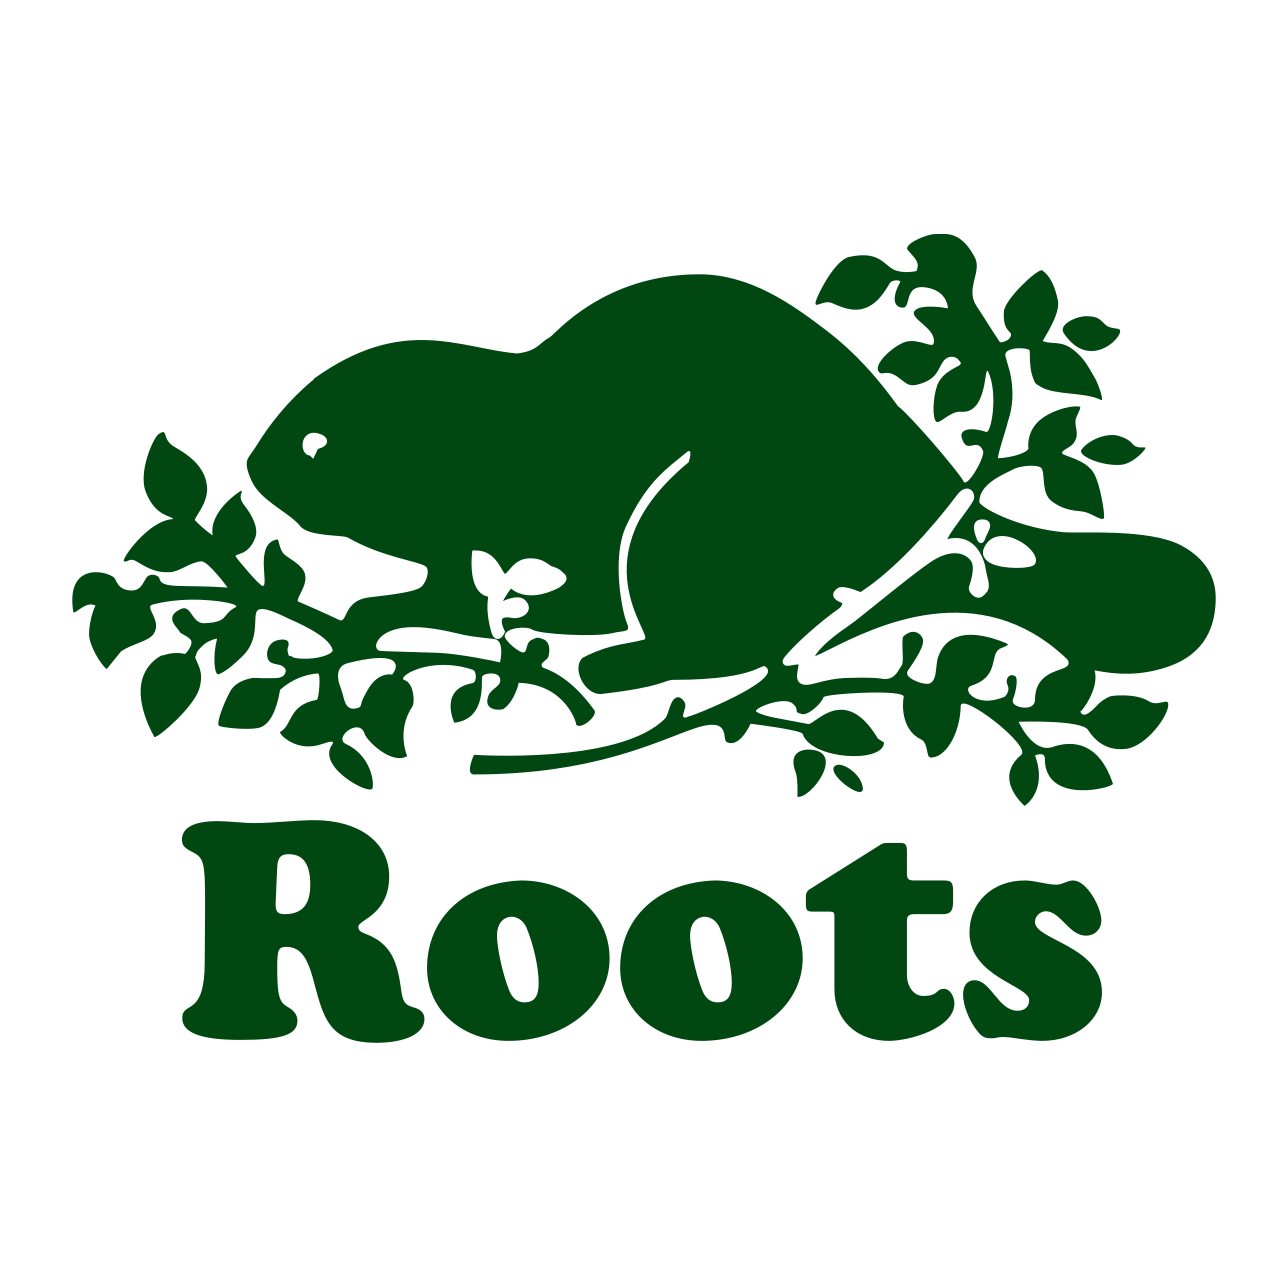 roots.png